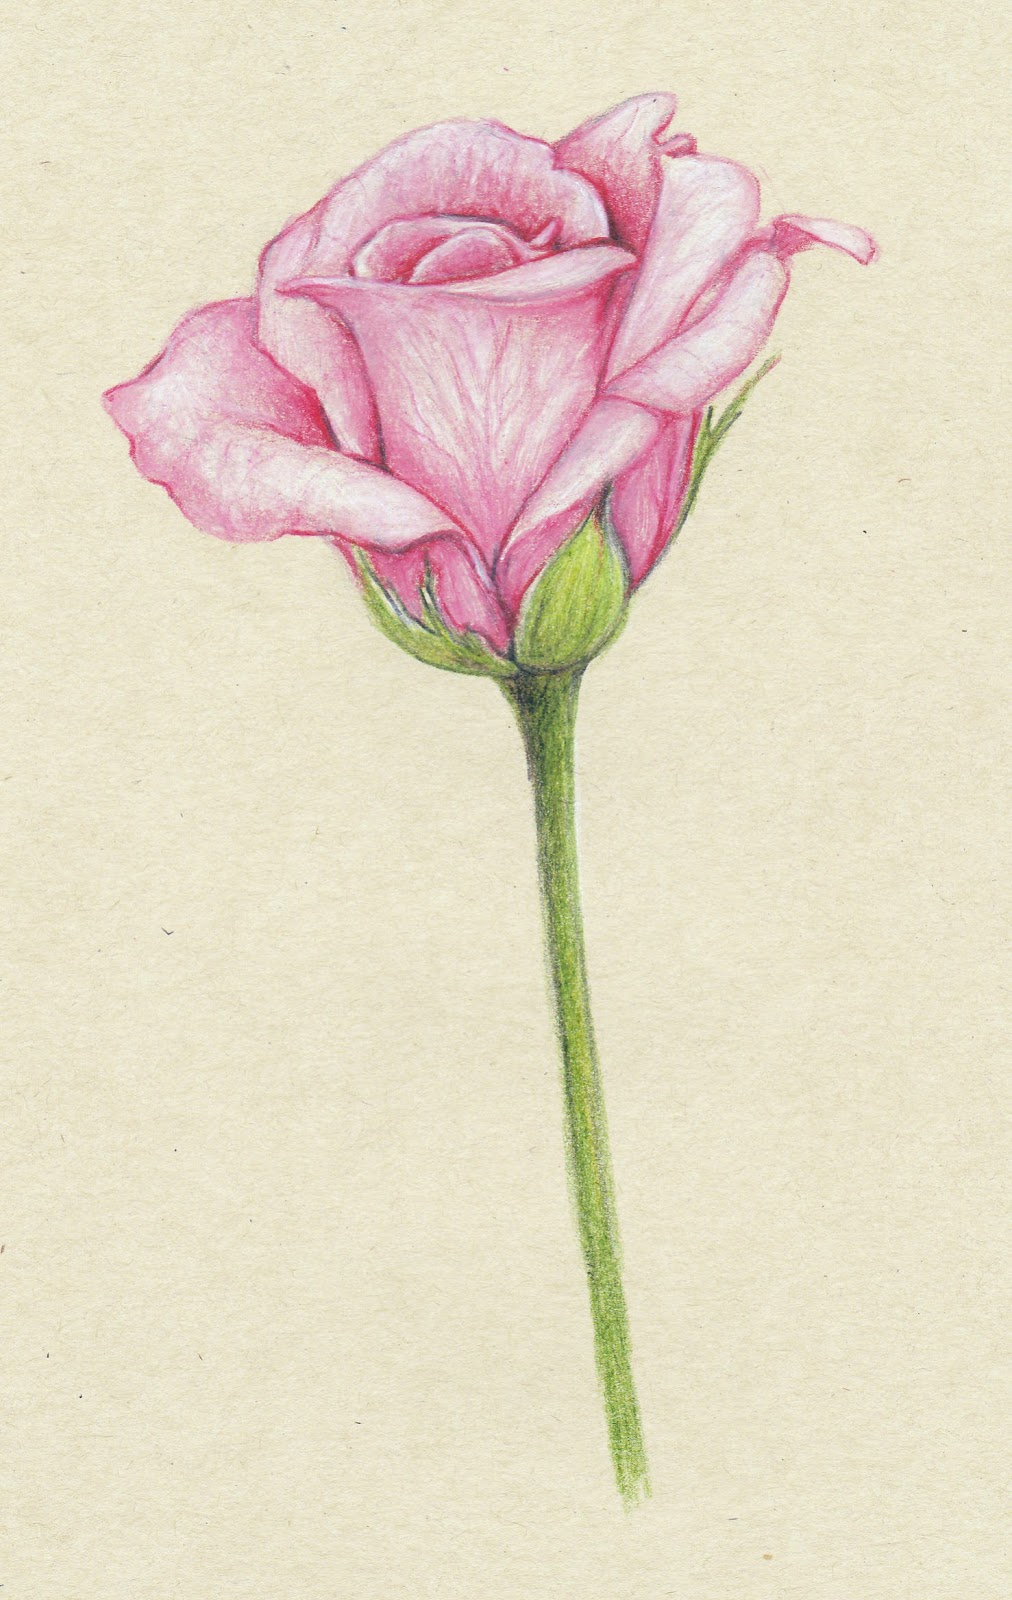 Drawn rose full Drawing and the on Find